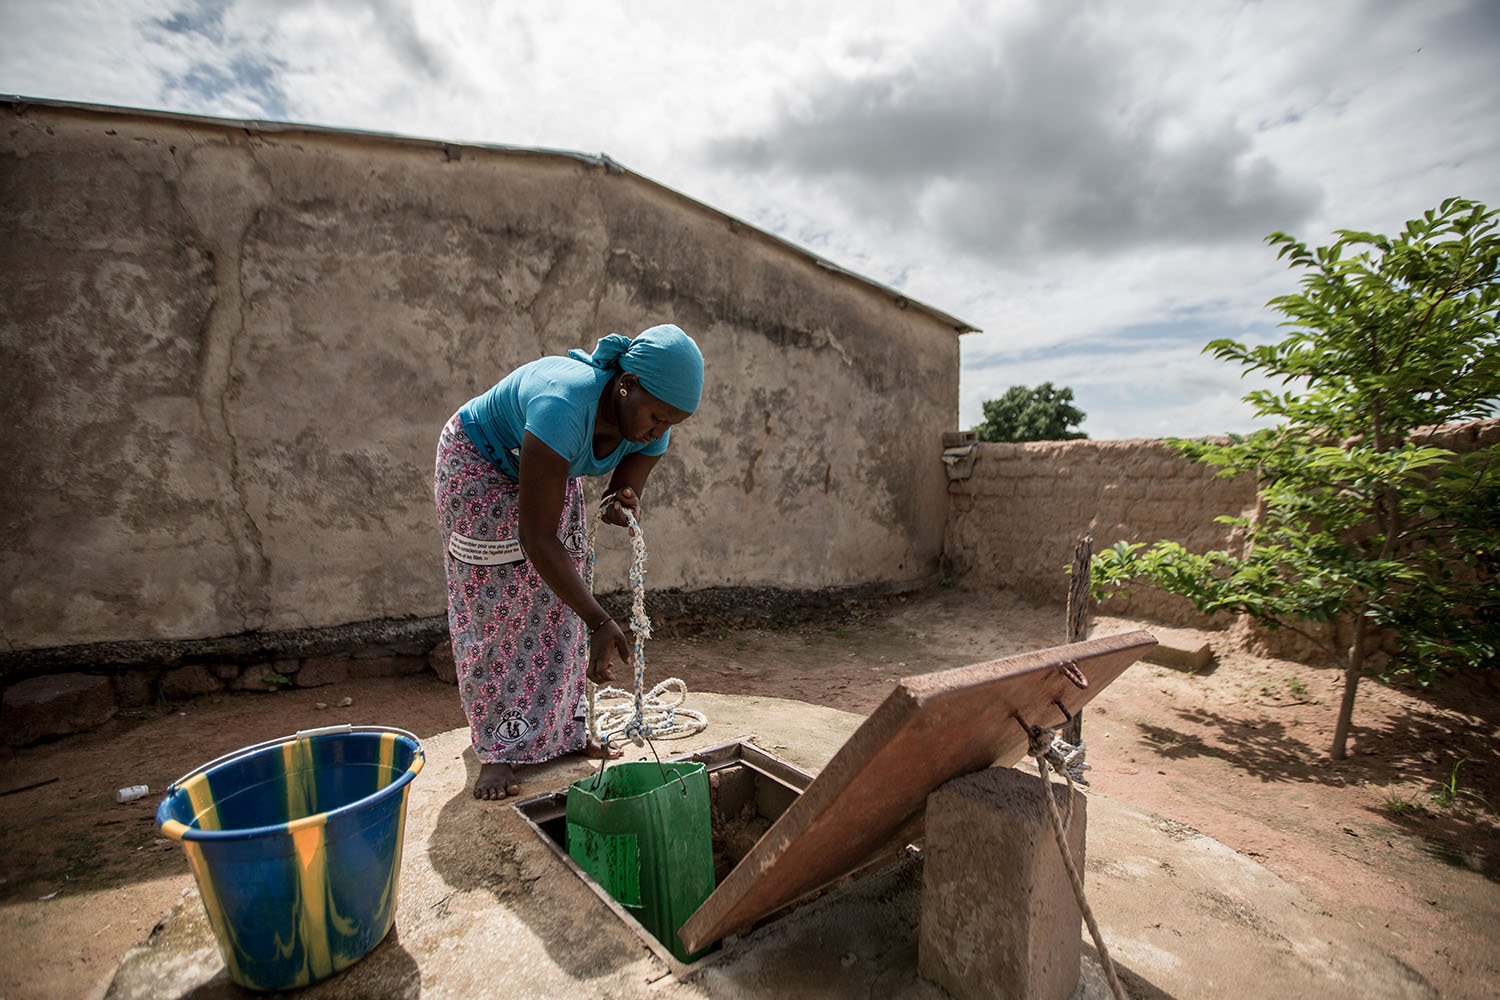 Waraba Doumbia,16 years (released) fetches water from their well at home. Before a girl even gets to school, she has prepared breakfast for the family, cleaned the homestead and taken care of all her younger siblings. When she gets home in the afternoon,